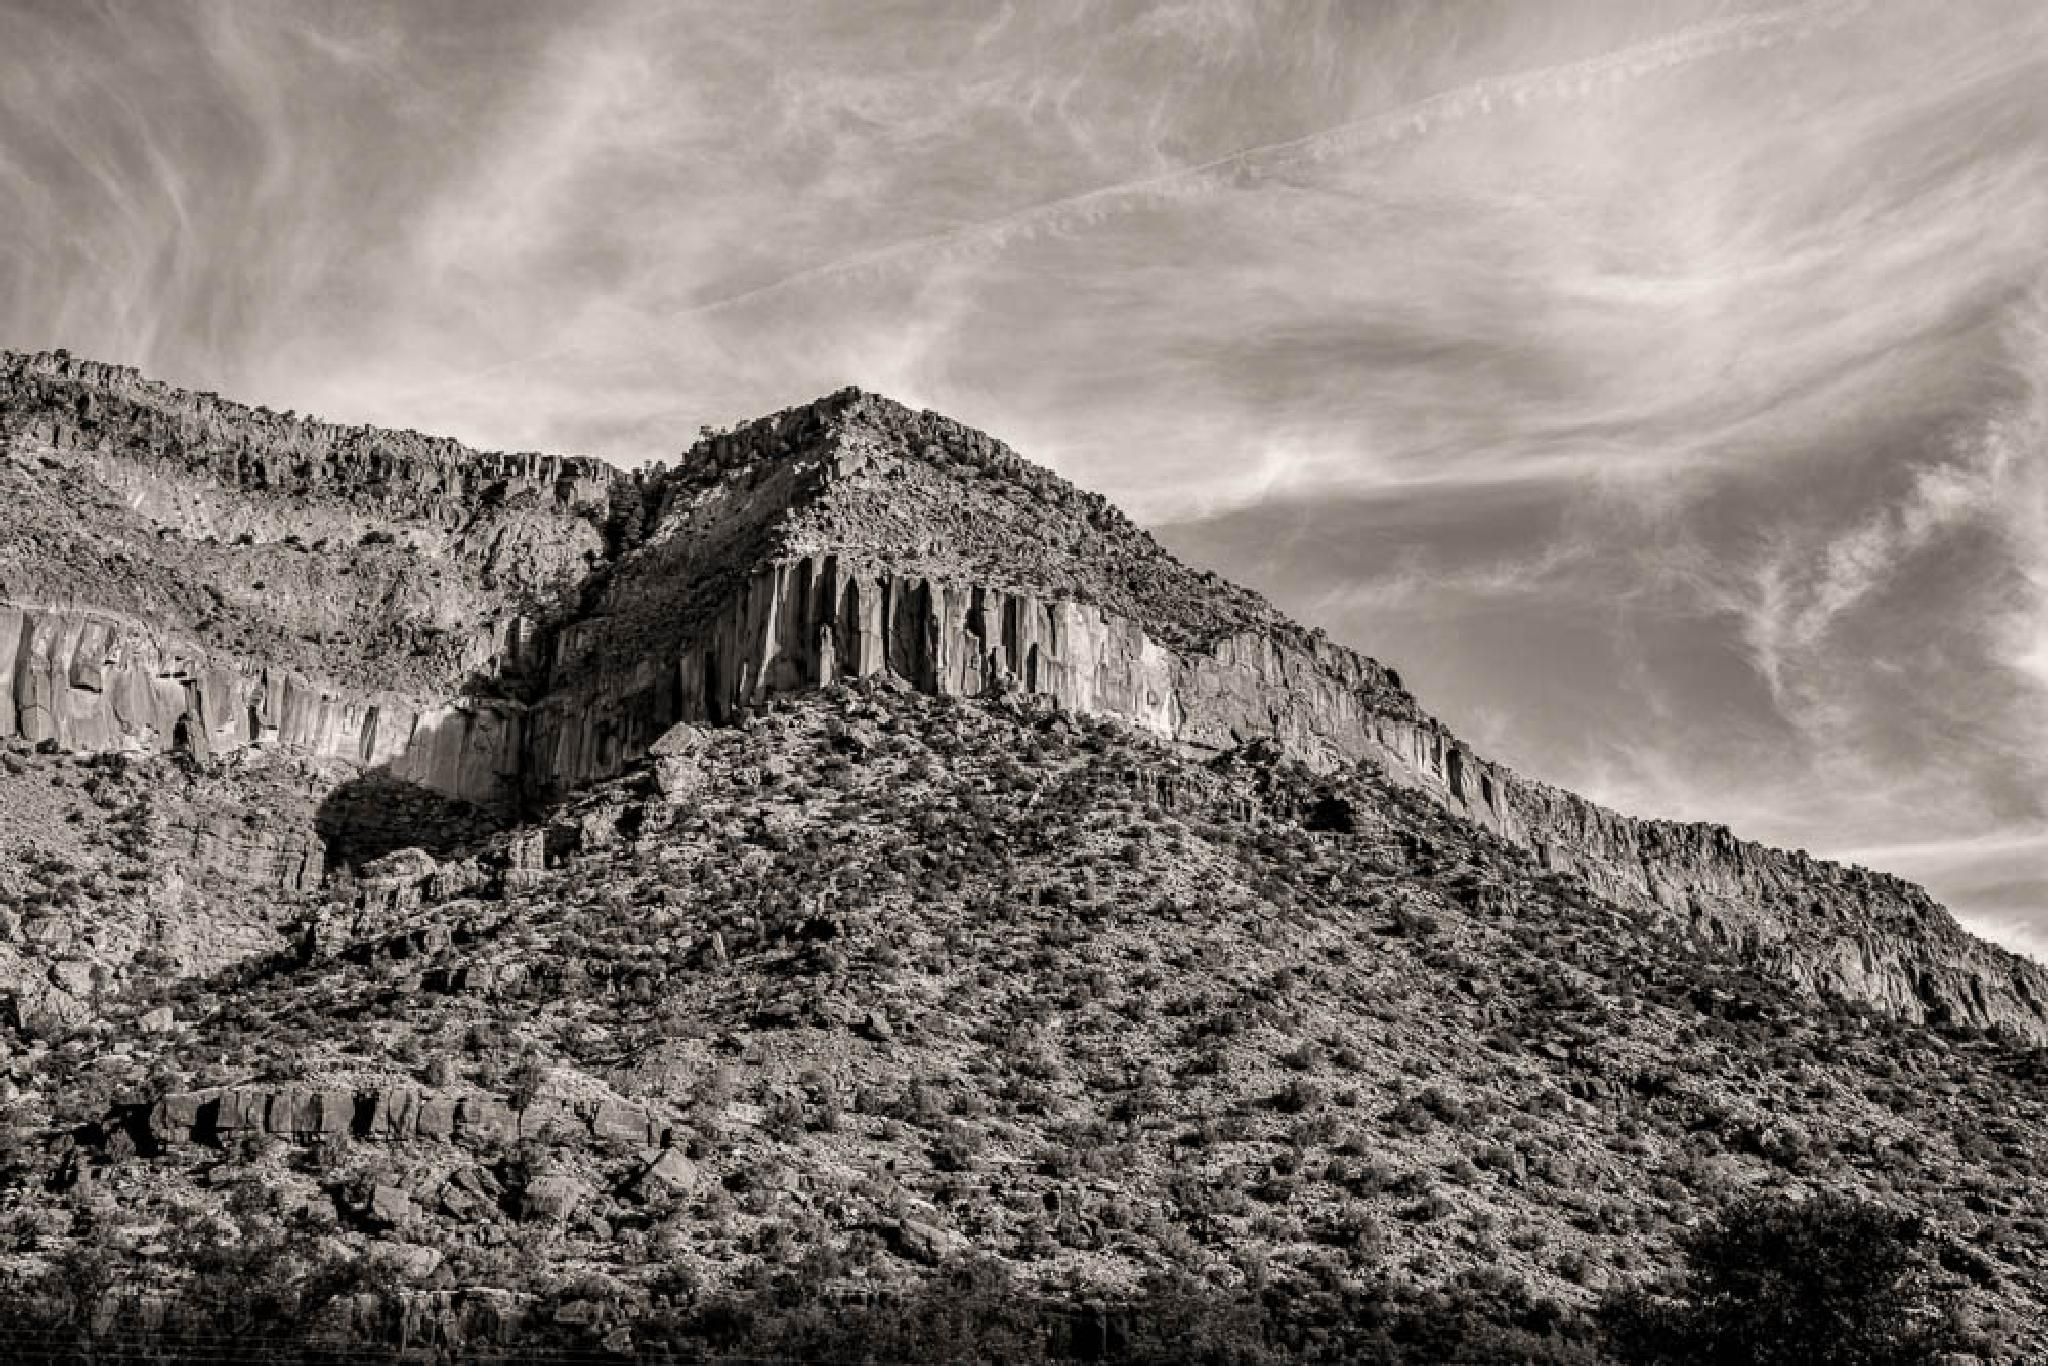 Ashes to Ashes-Jemez B&W-1 by Available Light Photography